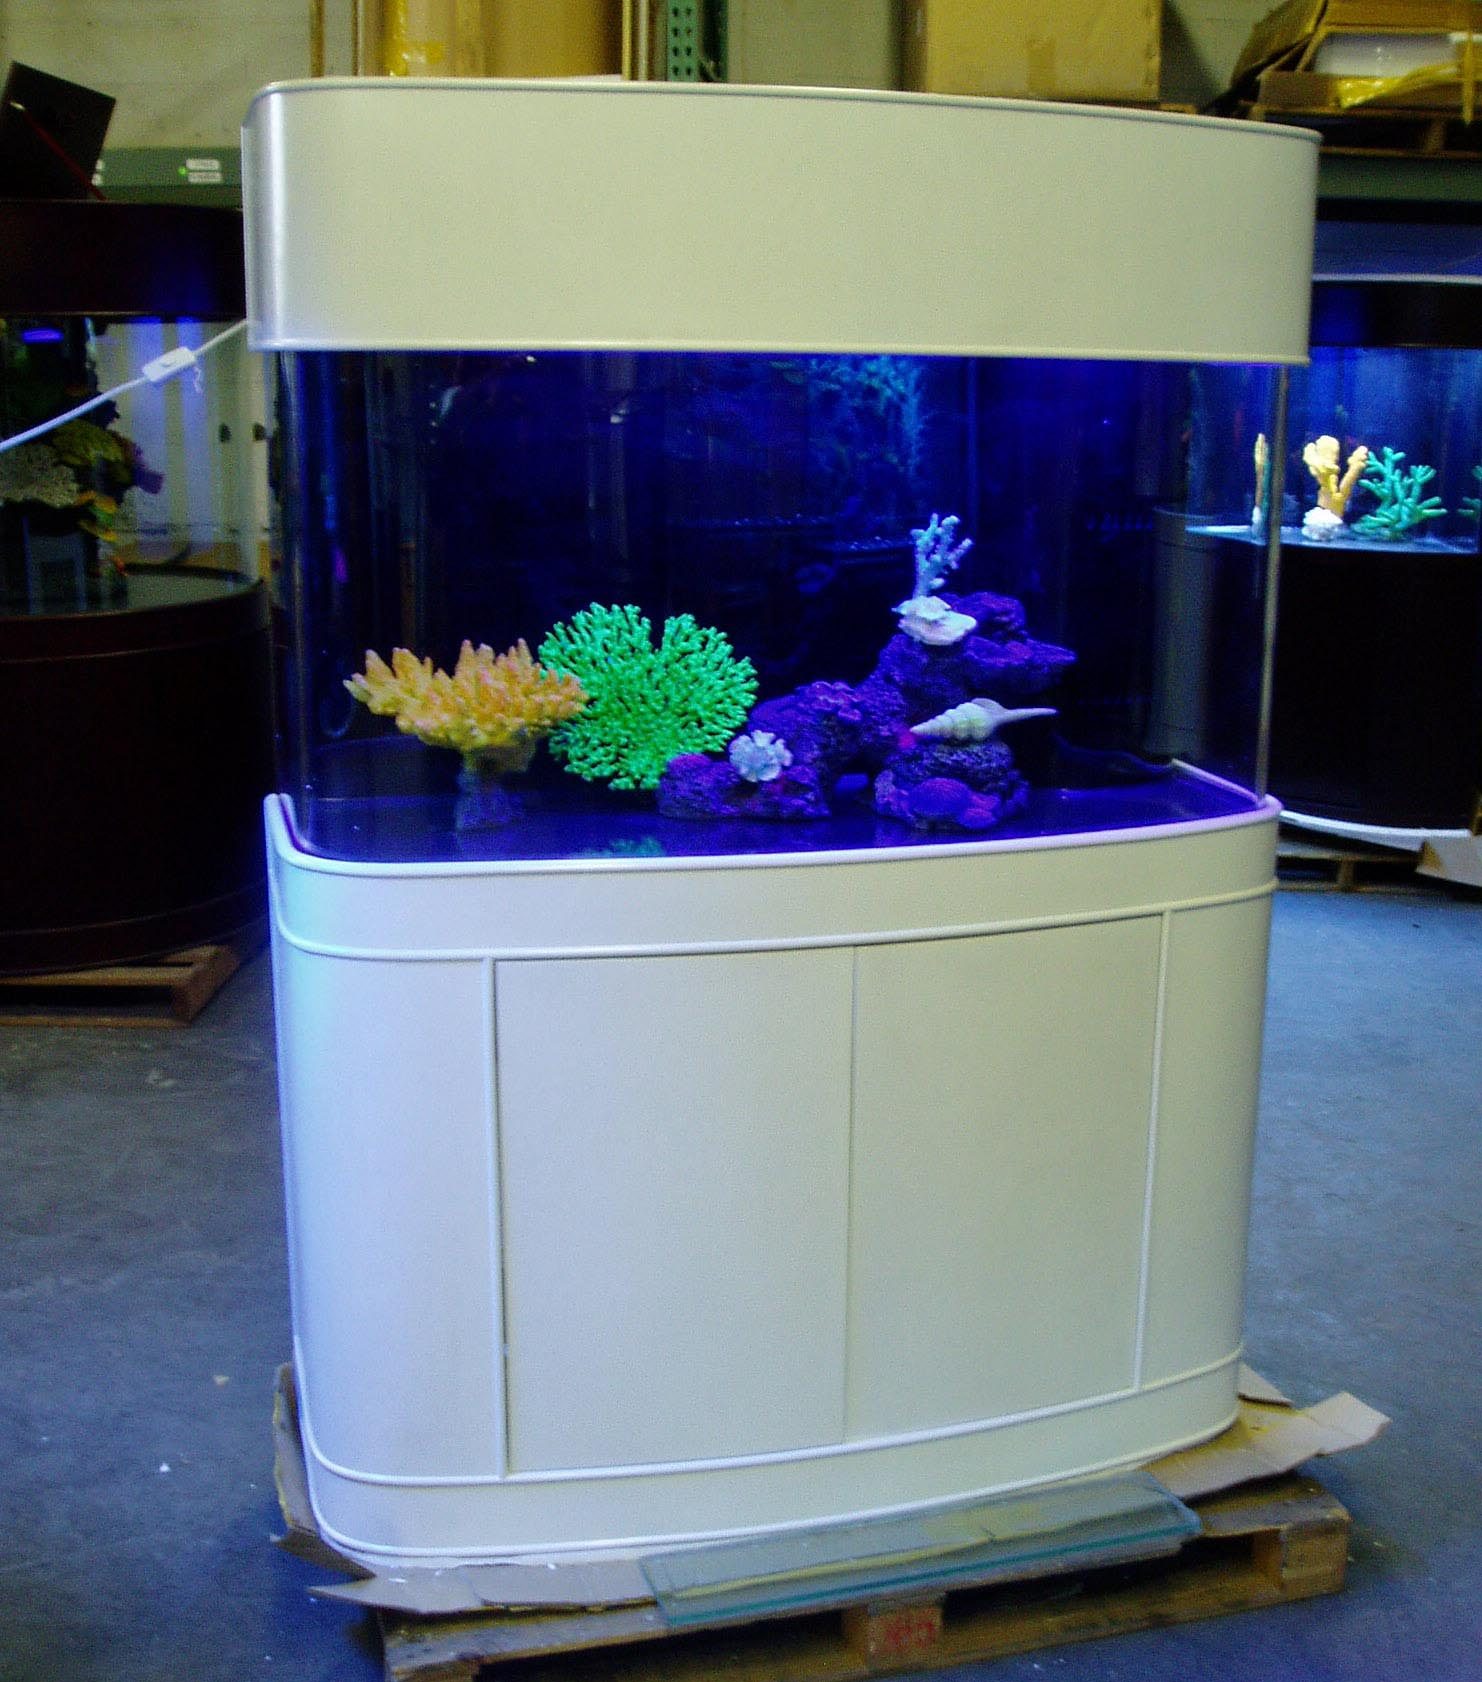 100 Gallon Glass Aquarium Dimensions